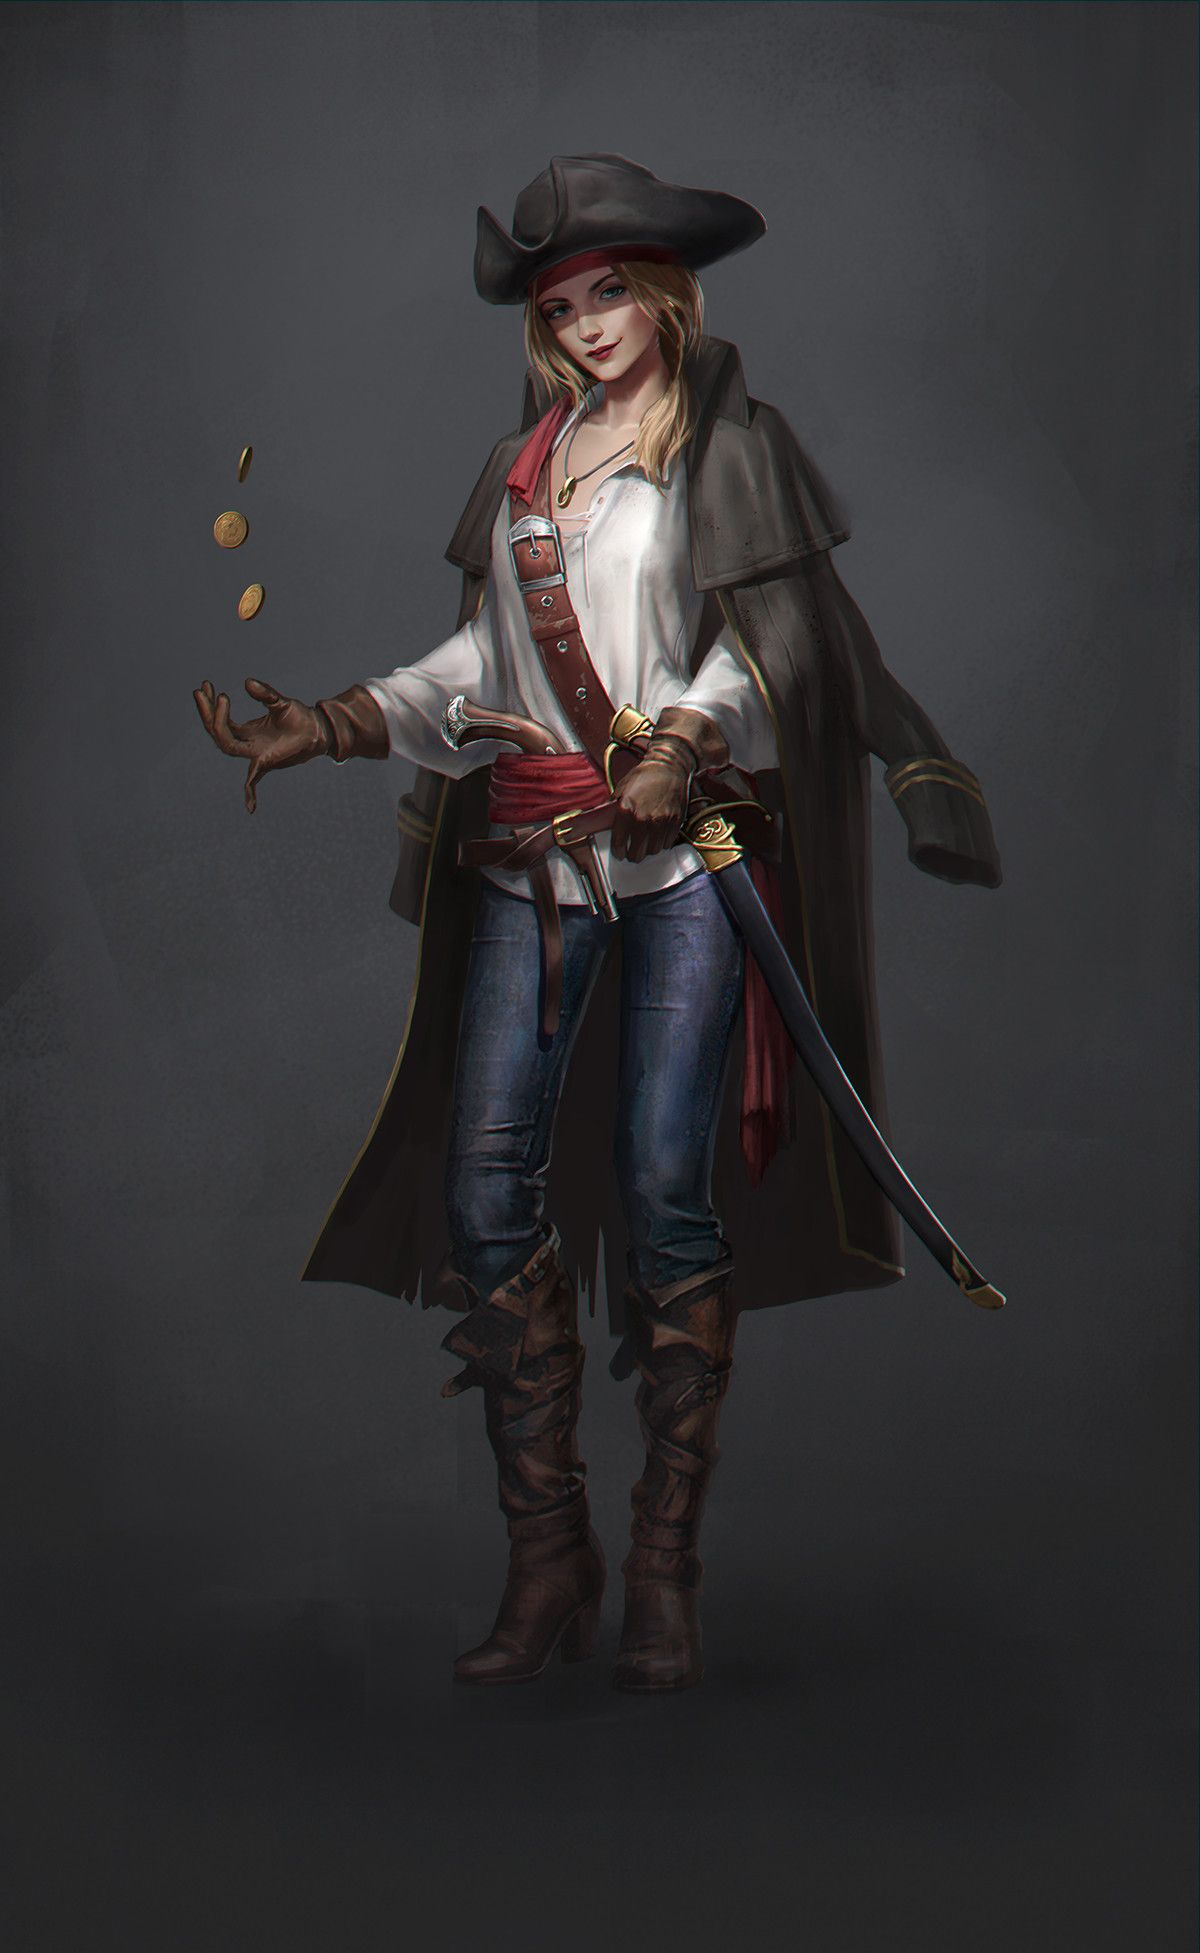 Pirate Eryc Tsang Artstation. Characters Rangers Rogues And Monks In 2019